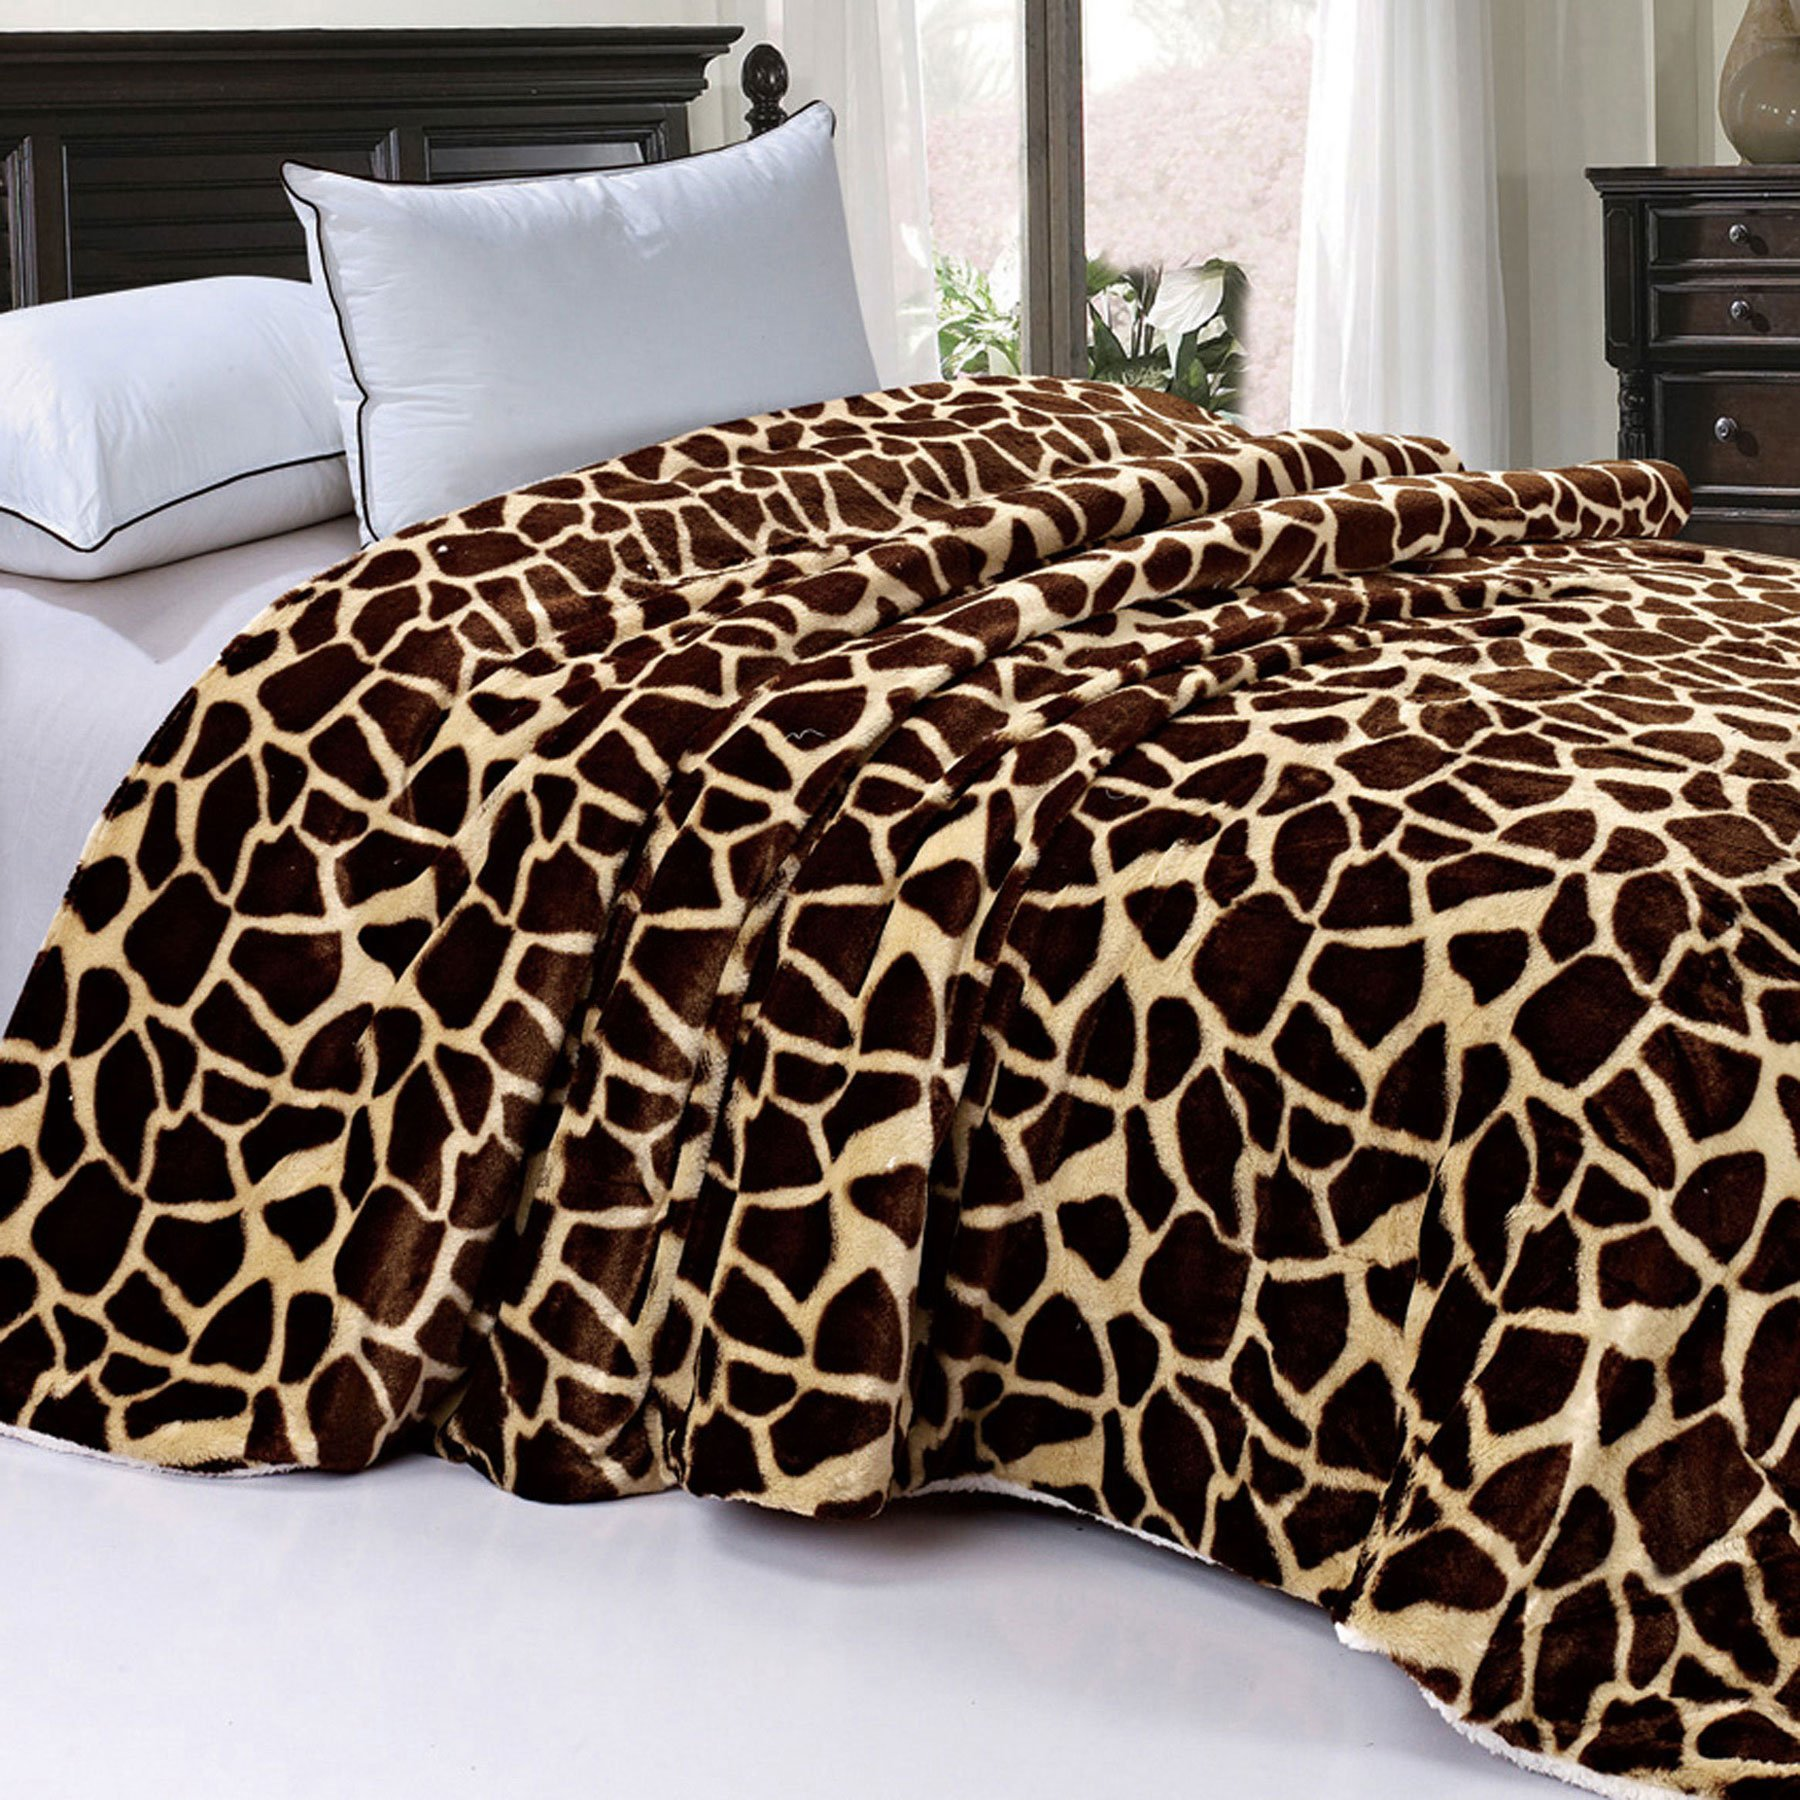 BOON Soft and Thick Faux Fur Sherpa Backing Bed Blanket, Brown Giraffe, 84'' x 92''